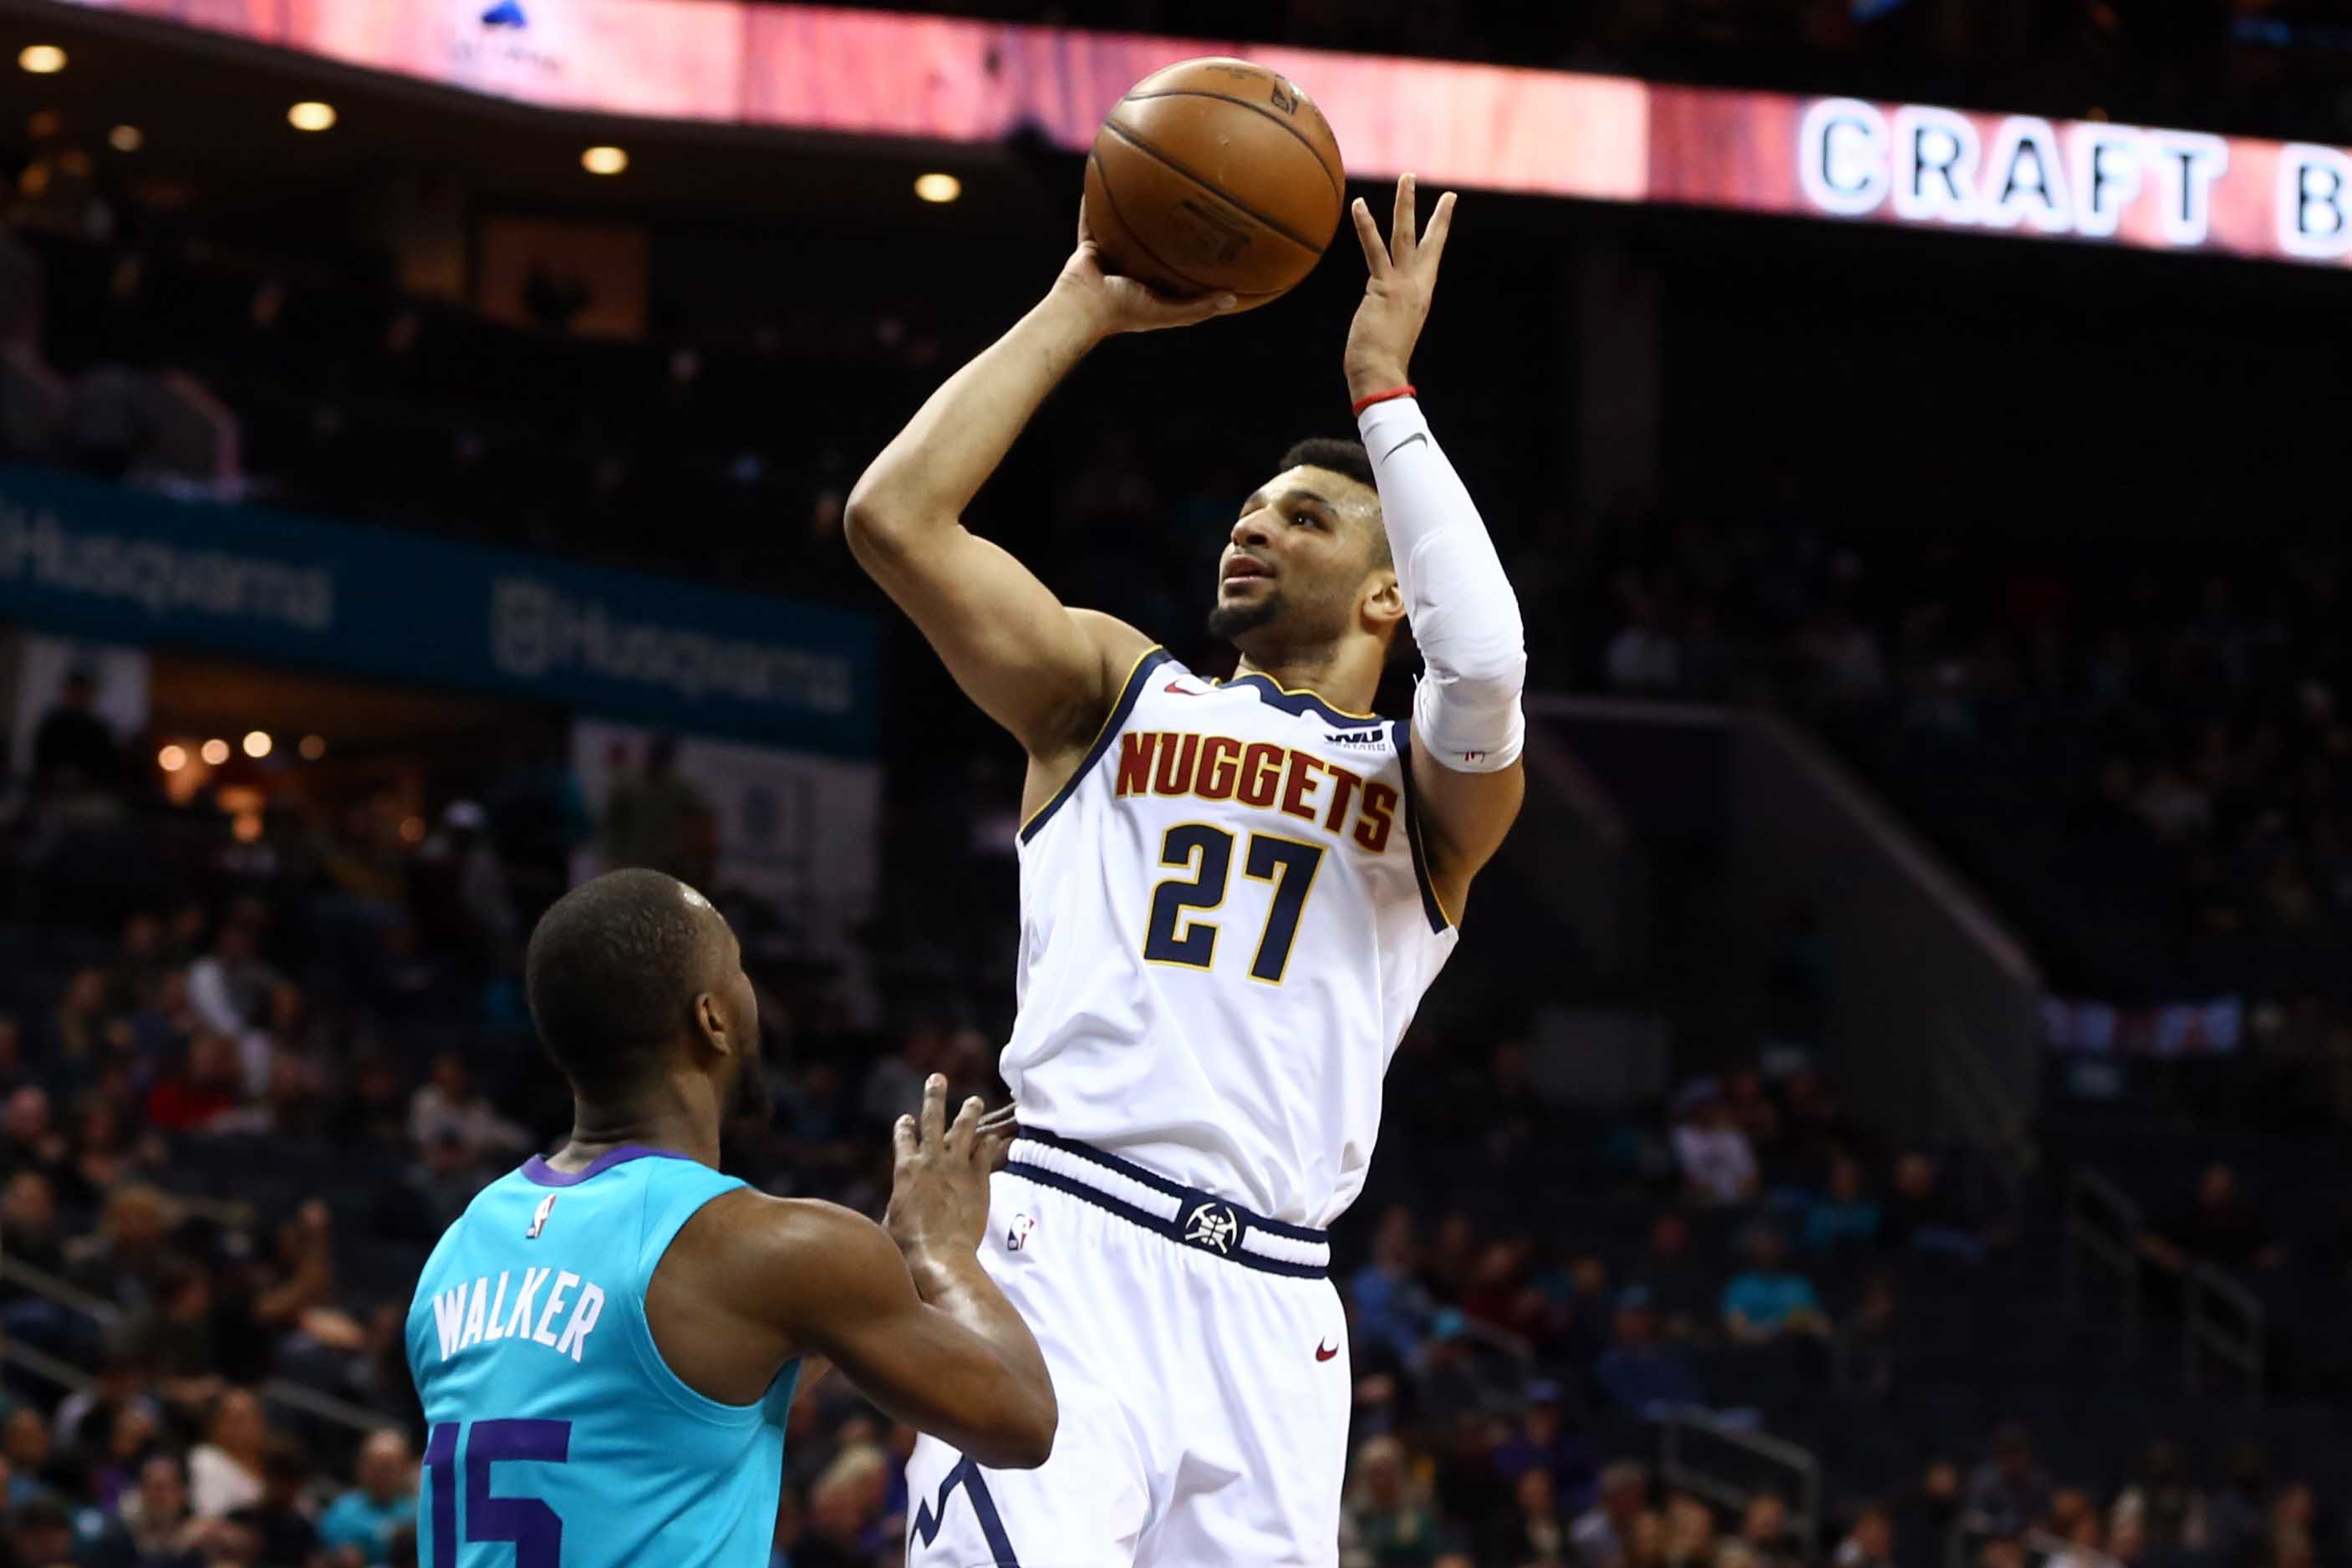 Denver Nuggets guard Jamal Murray (27) shoots the ball over Charlotte Hornets guard Kemba Walker (15) in the first half at Spectrum Center.